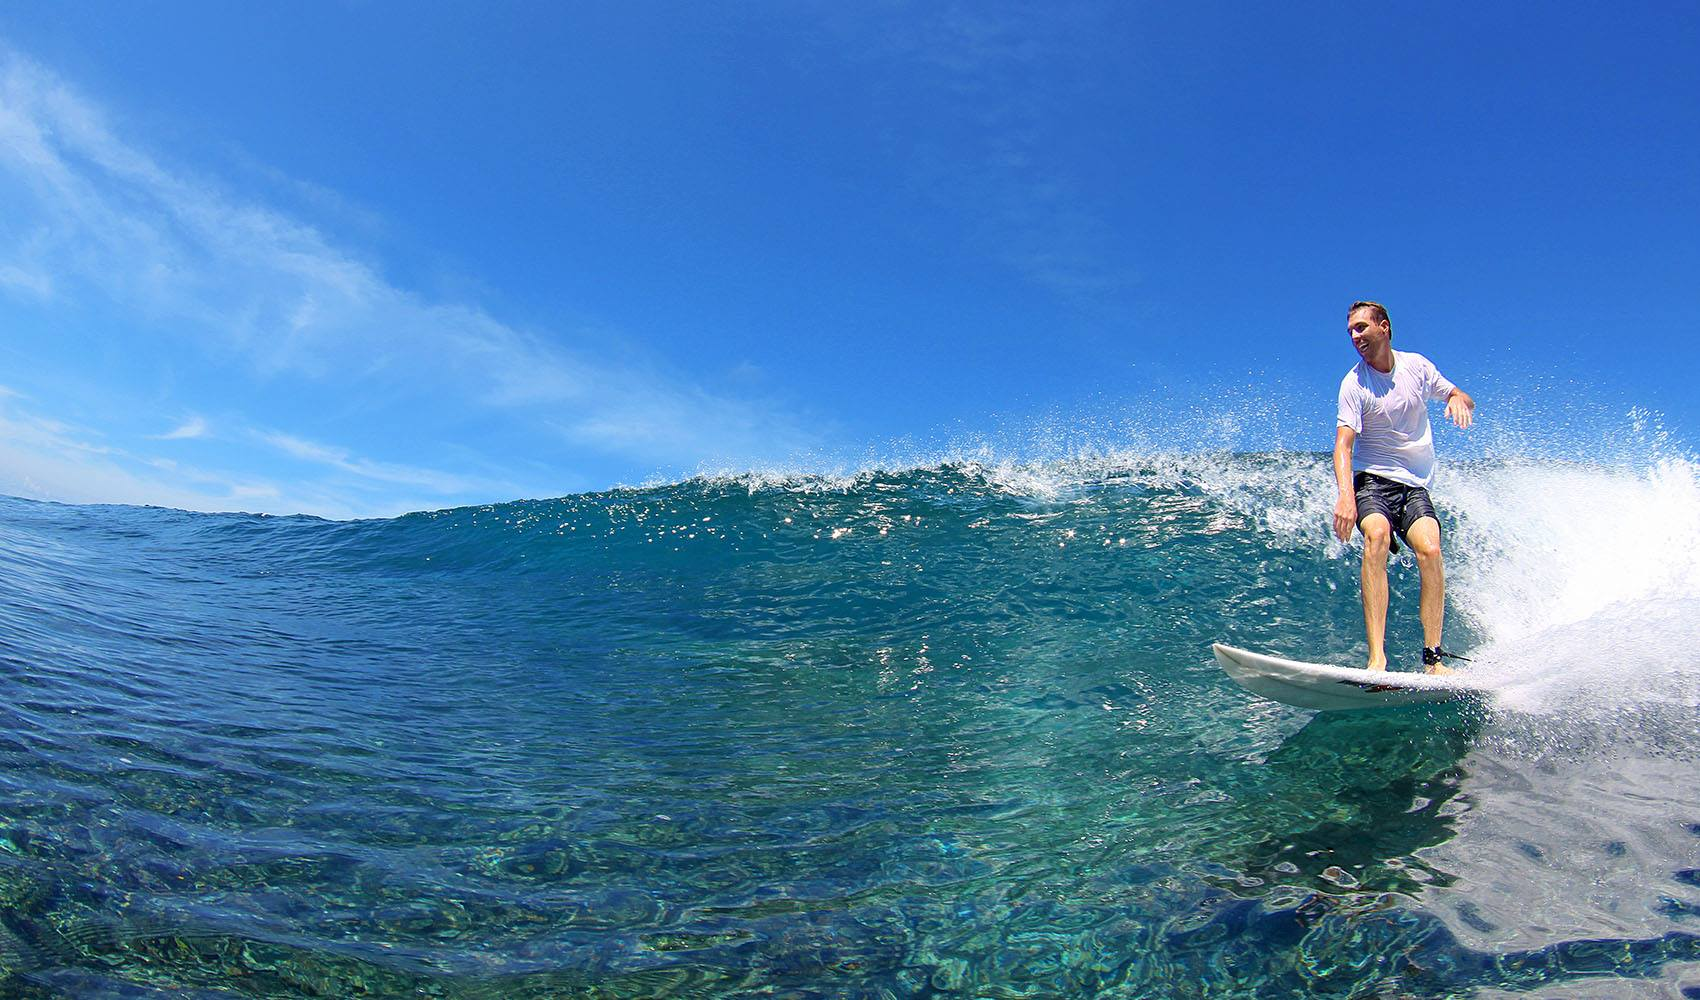 Telo_Island_Lodge_Surf_Indonesia Clear Water Stoke.jpg